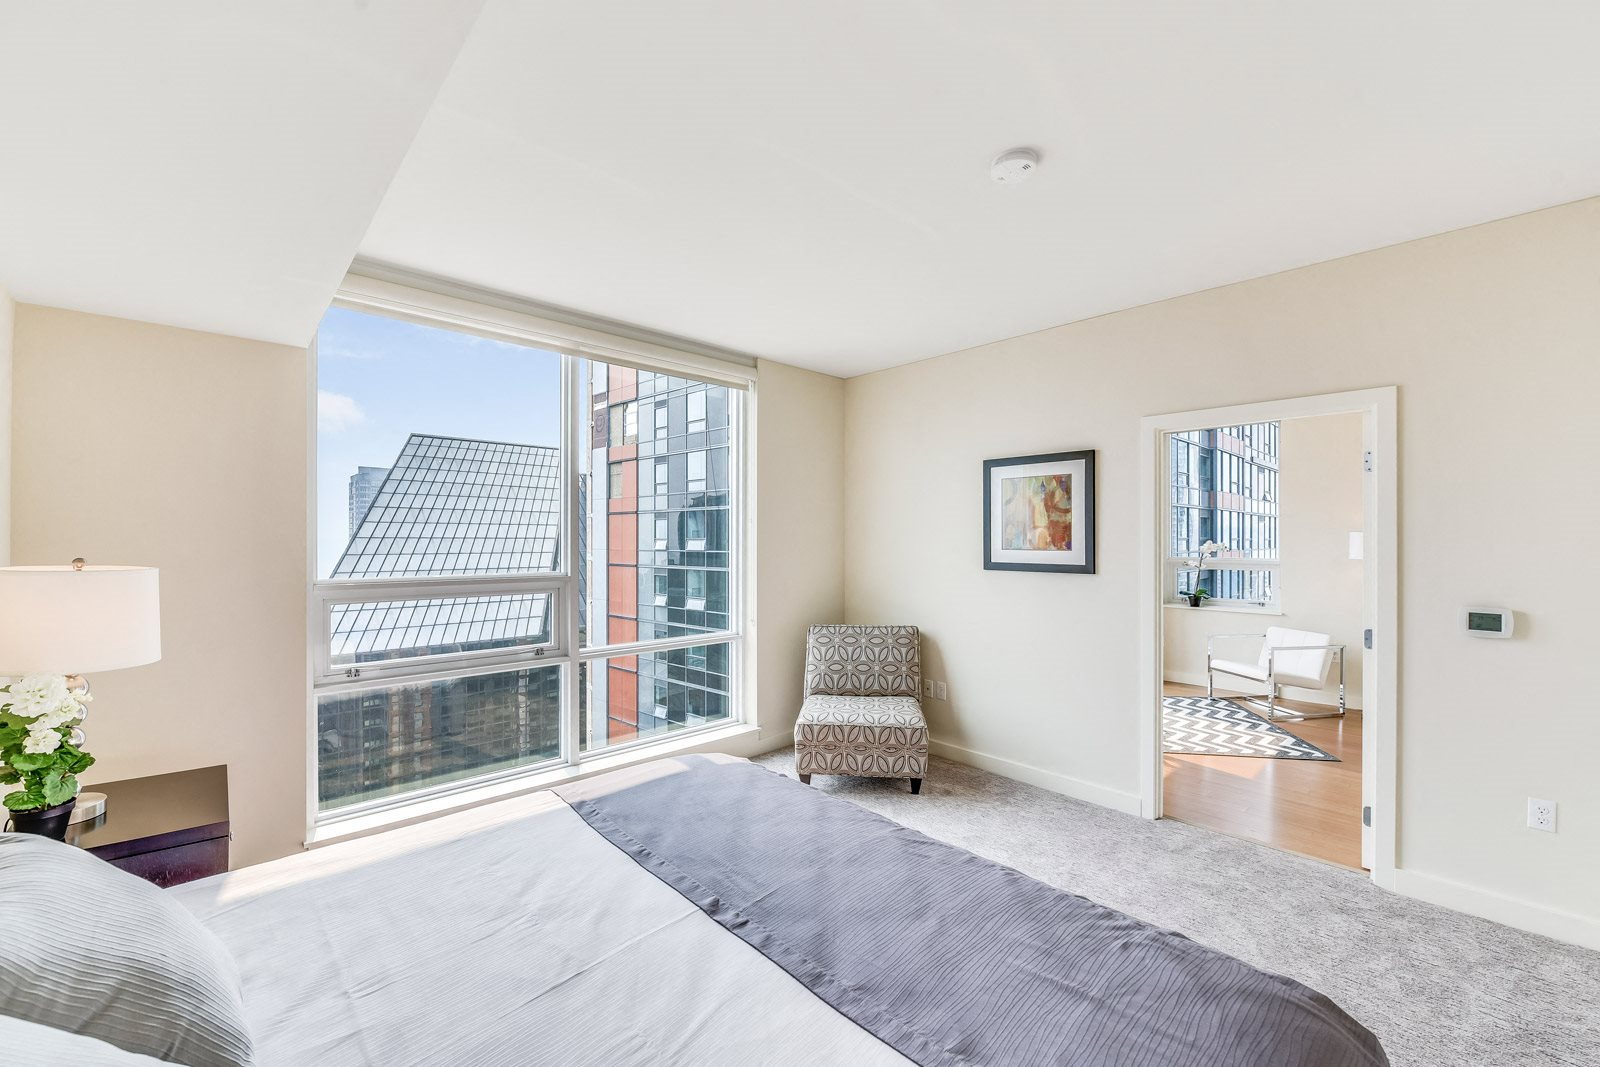 Expansive Penthouse Bedroom at The Martin, 98121, WA